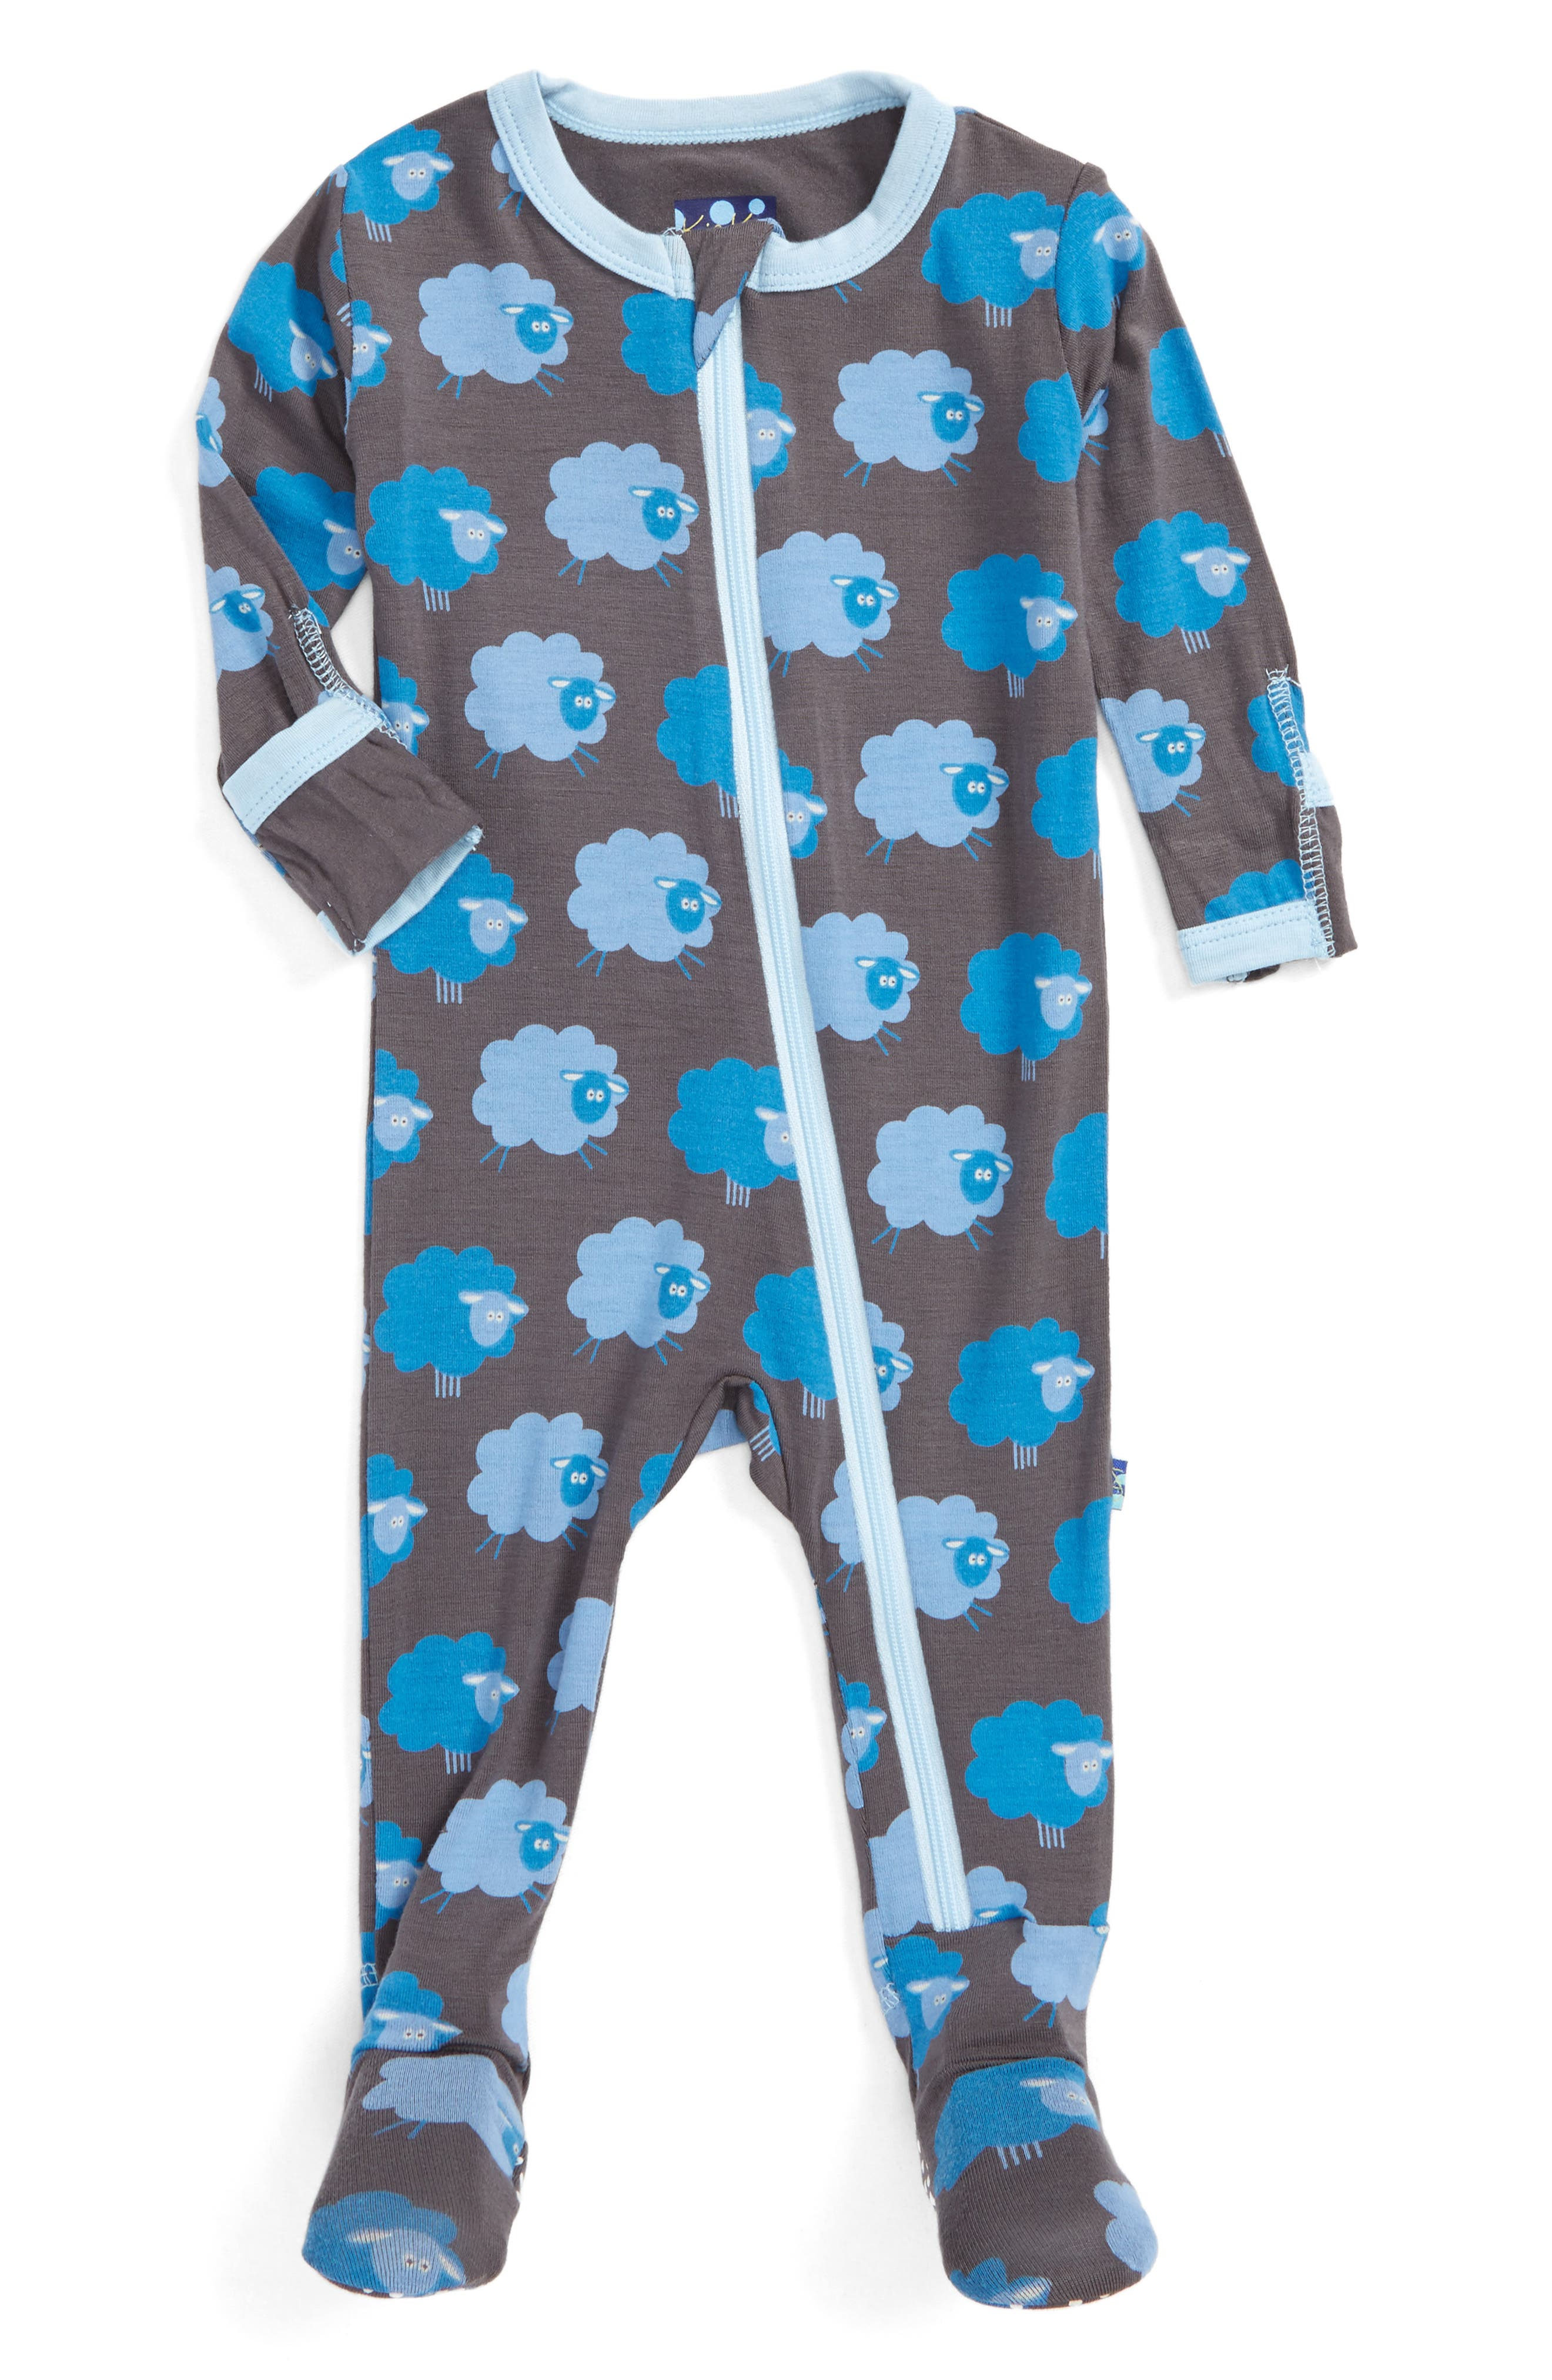 KICKEE PANTS Fitted One-Piece Footie Pajamas